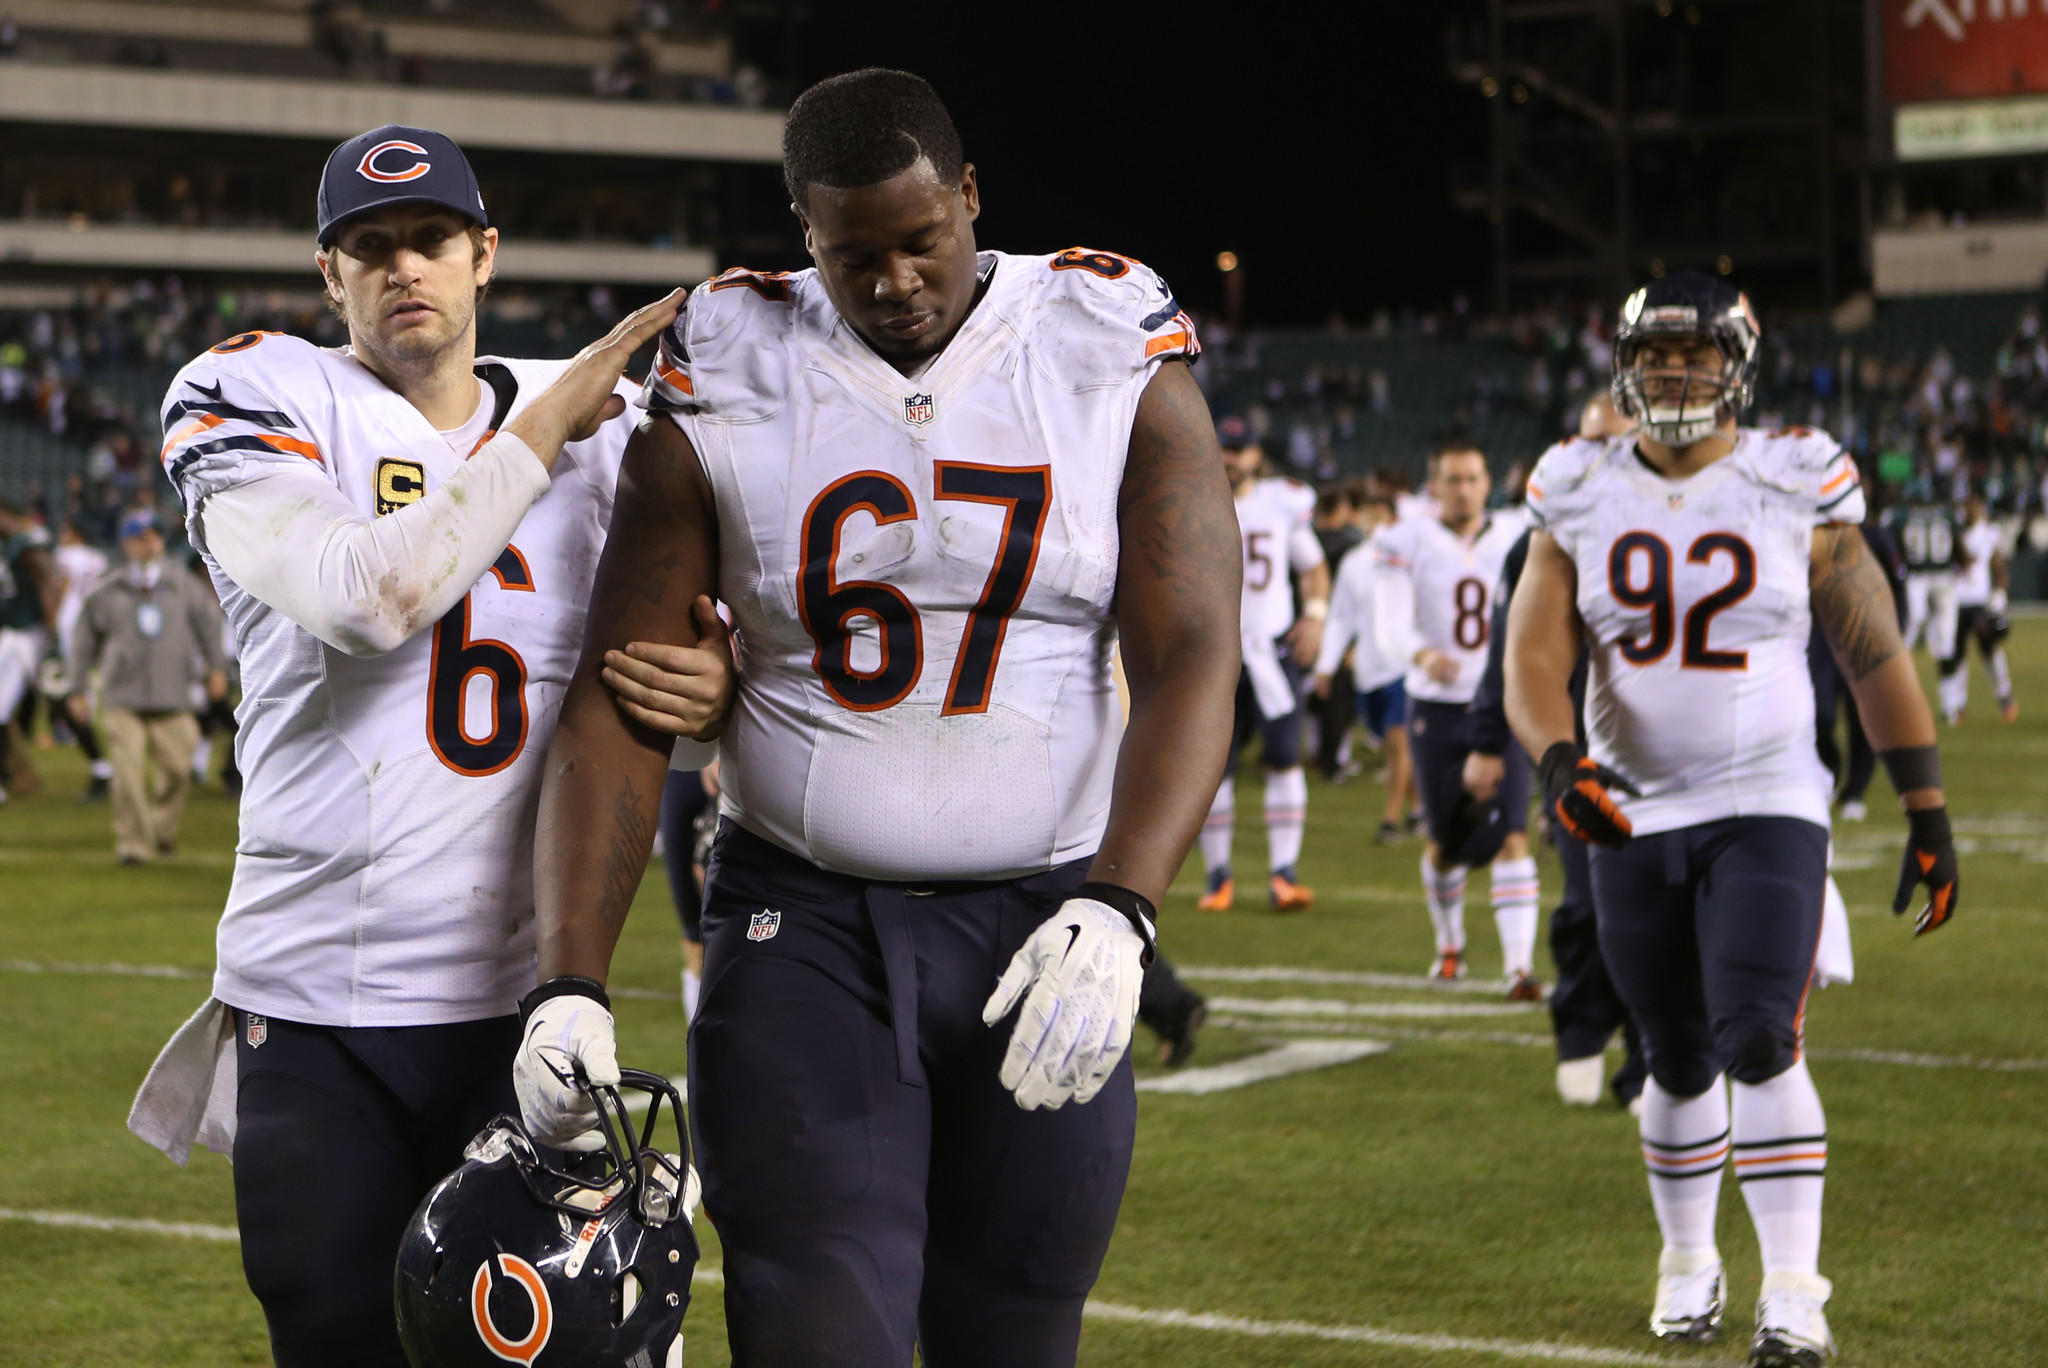 Chicago Bears quarterback Jay Cutler (left) consoles offensive tackle Jordan Mills after losing to the Eagles.